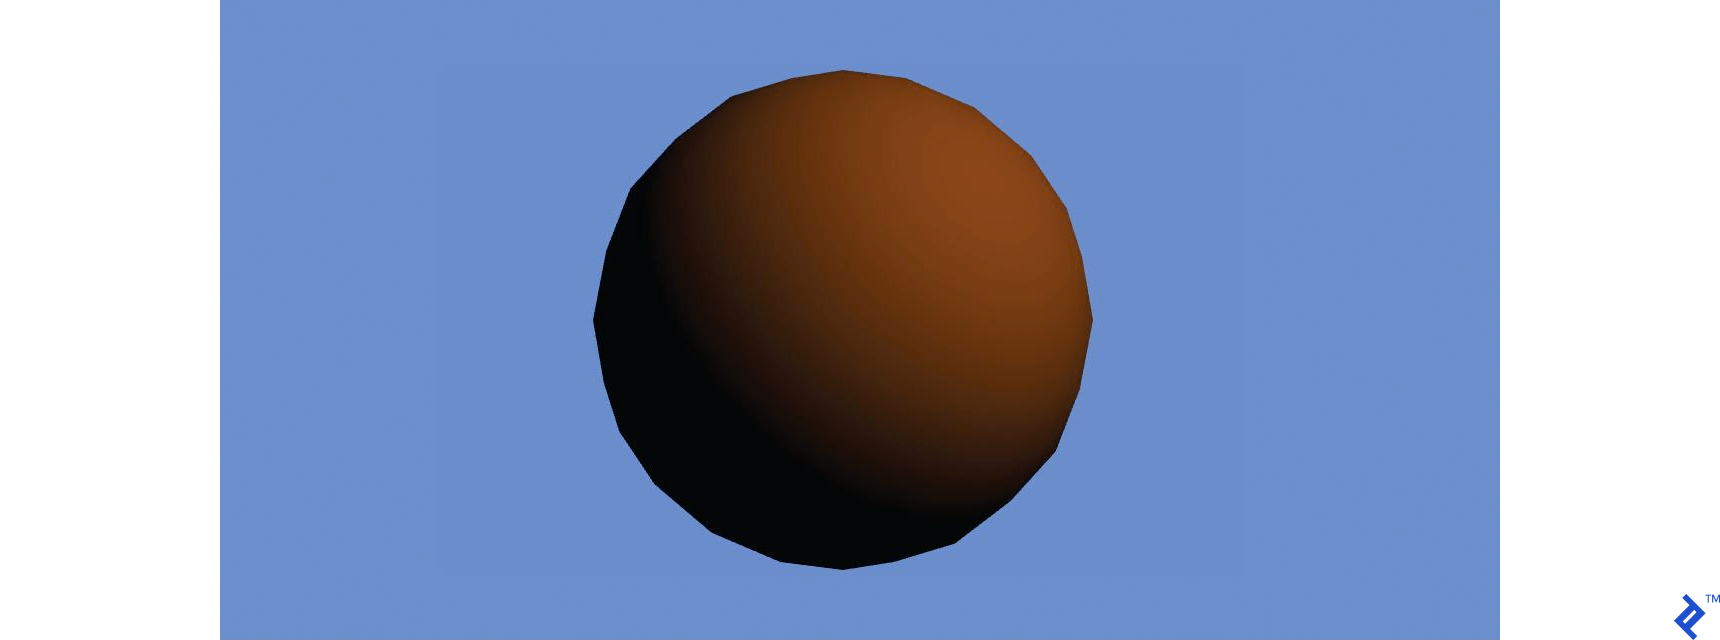 Brown object with sunlight